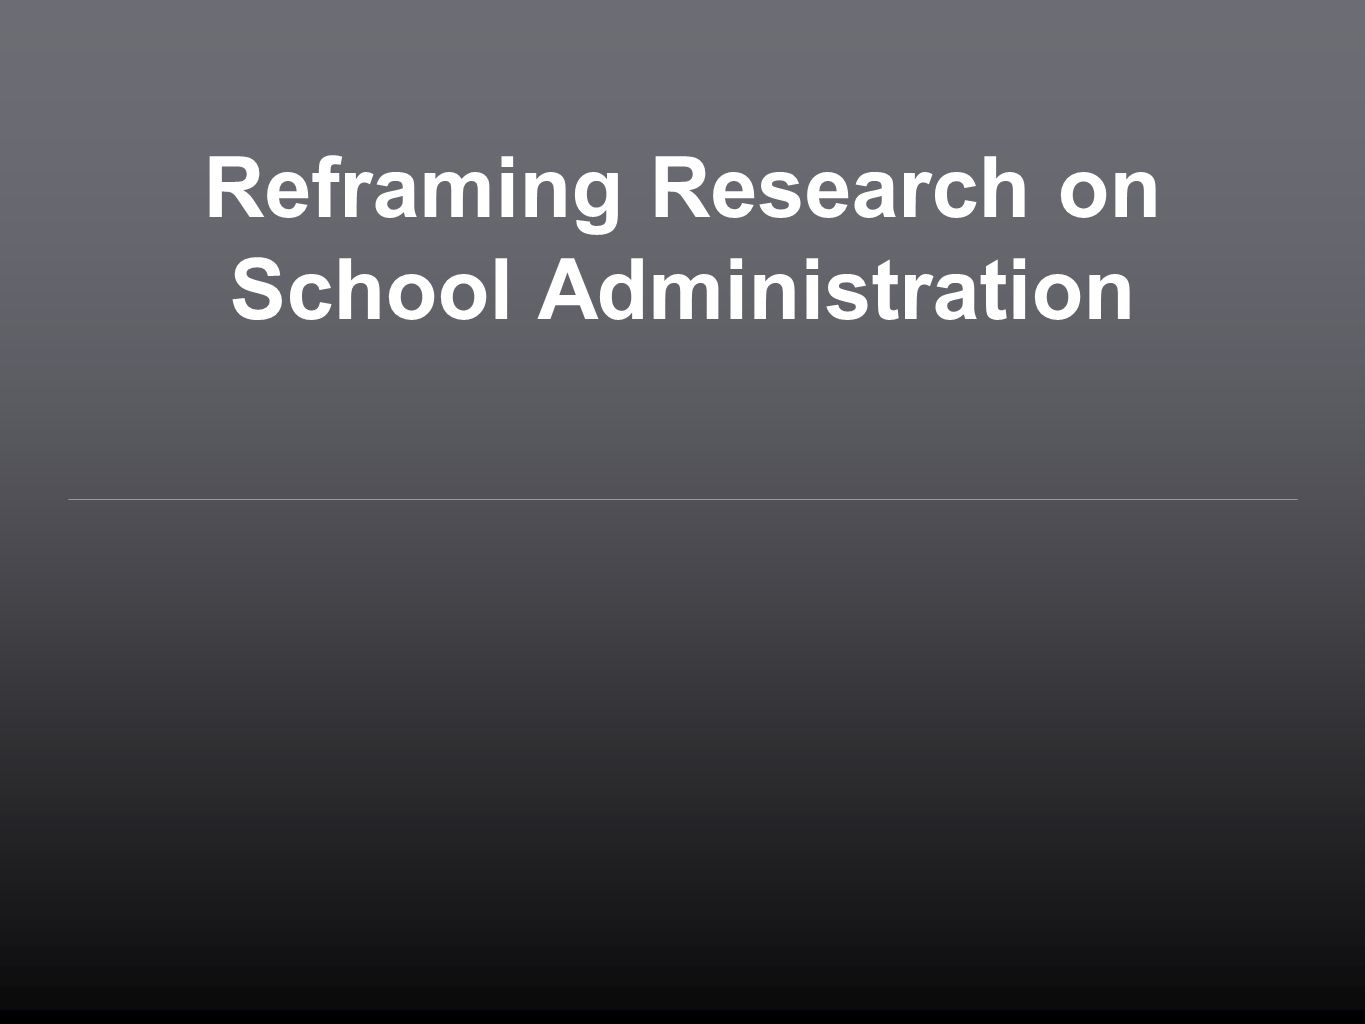 Reframing Research on School Administration